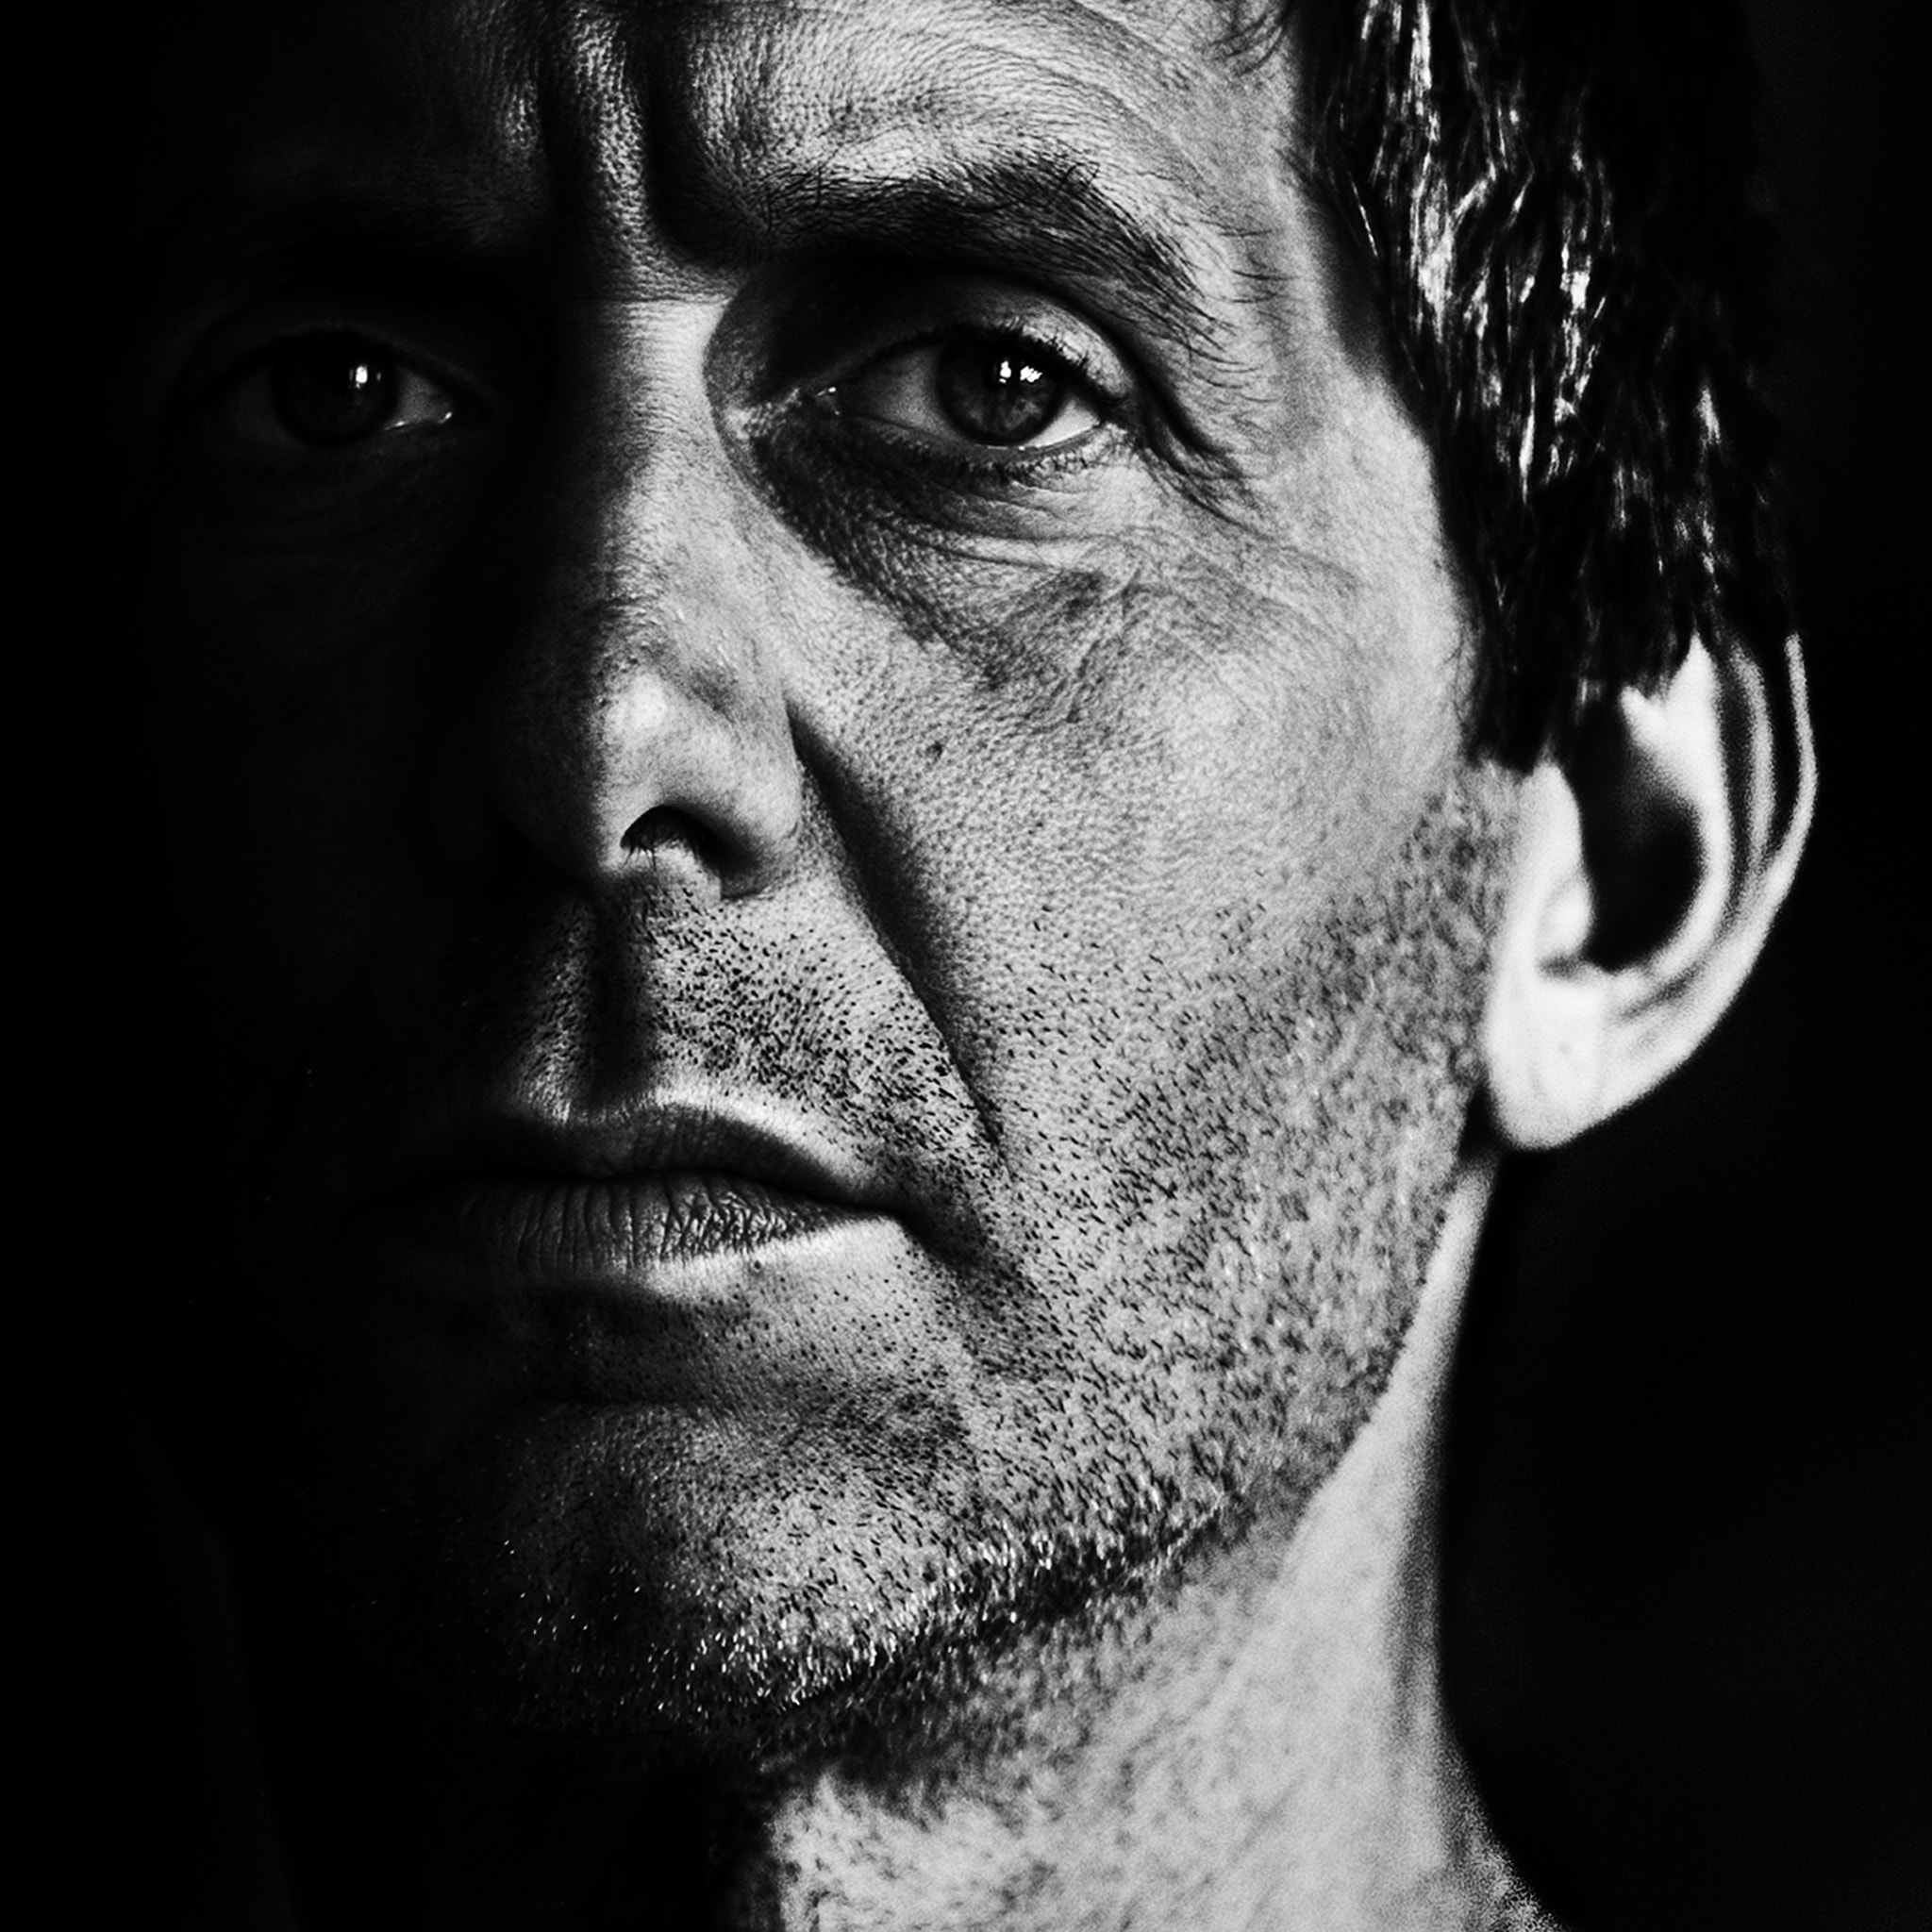 Photograph Kevin Cotter by Betina La Plante on 500px